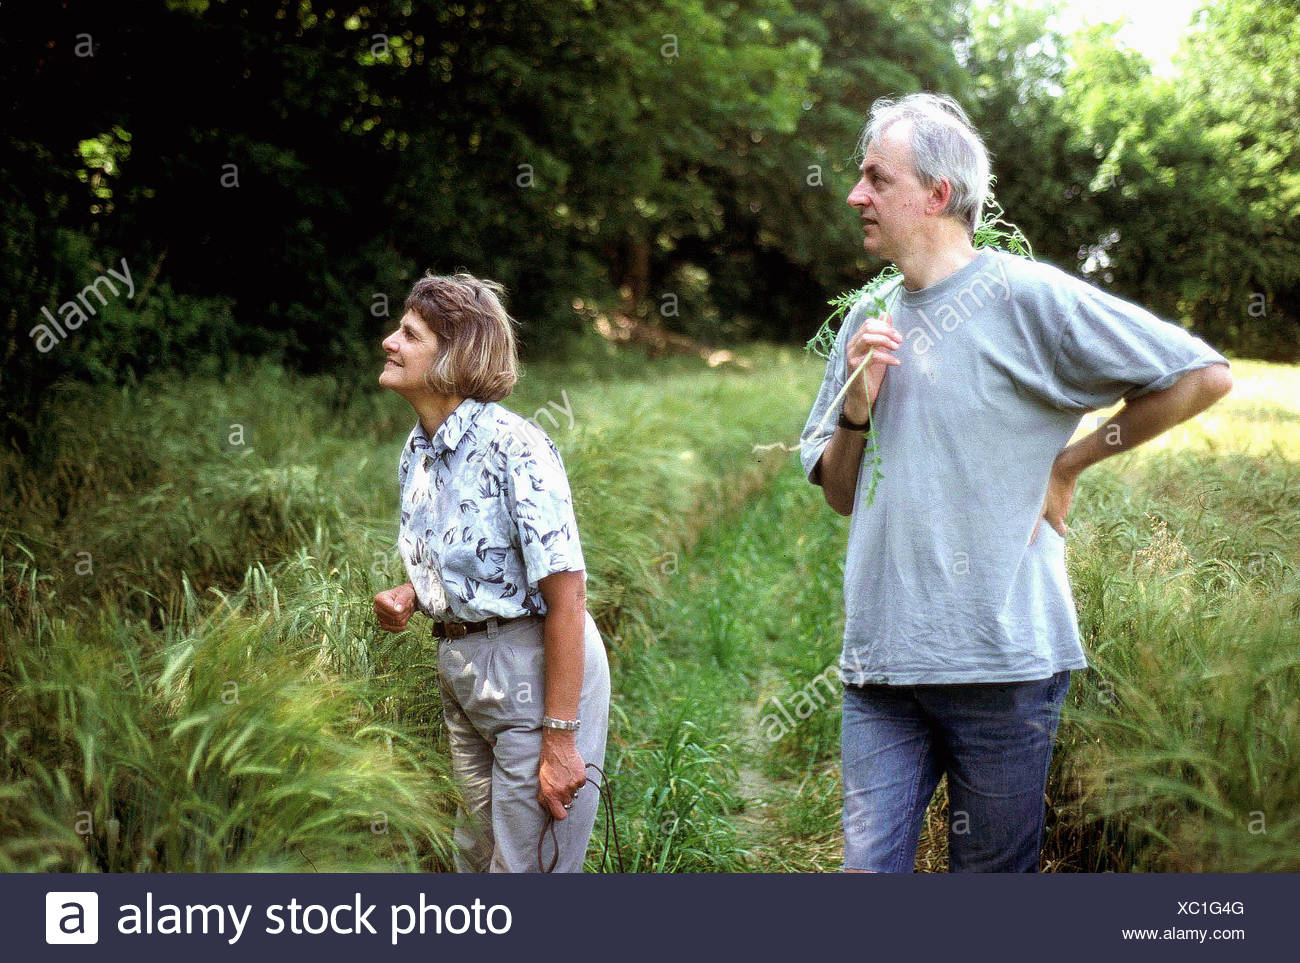 elderly couple on a country walk - Stock Image